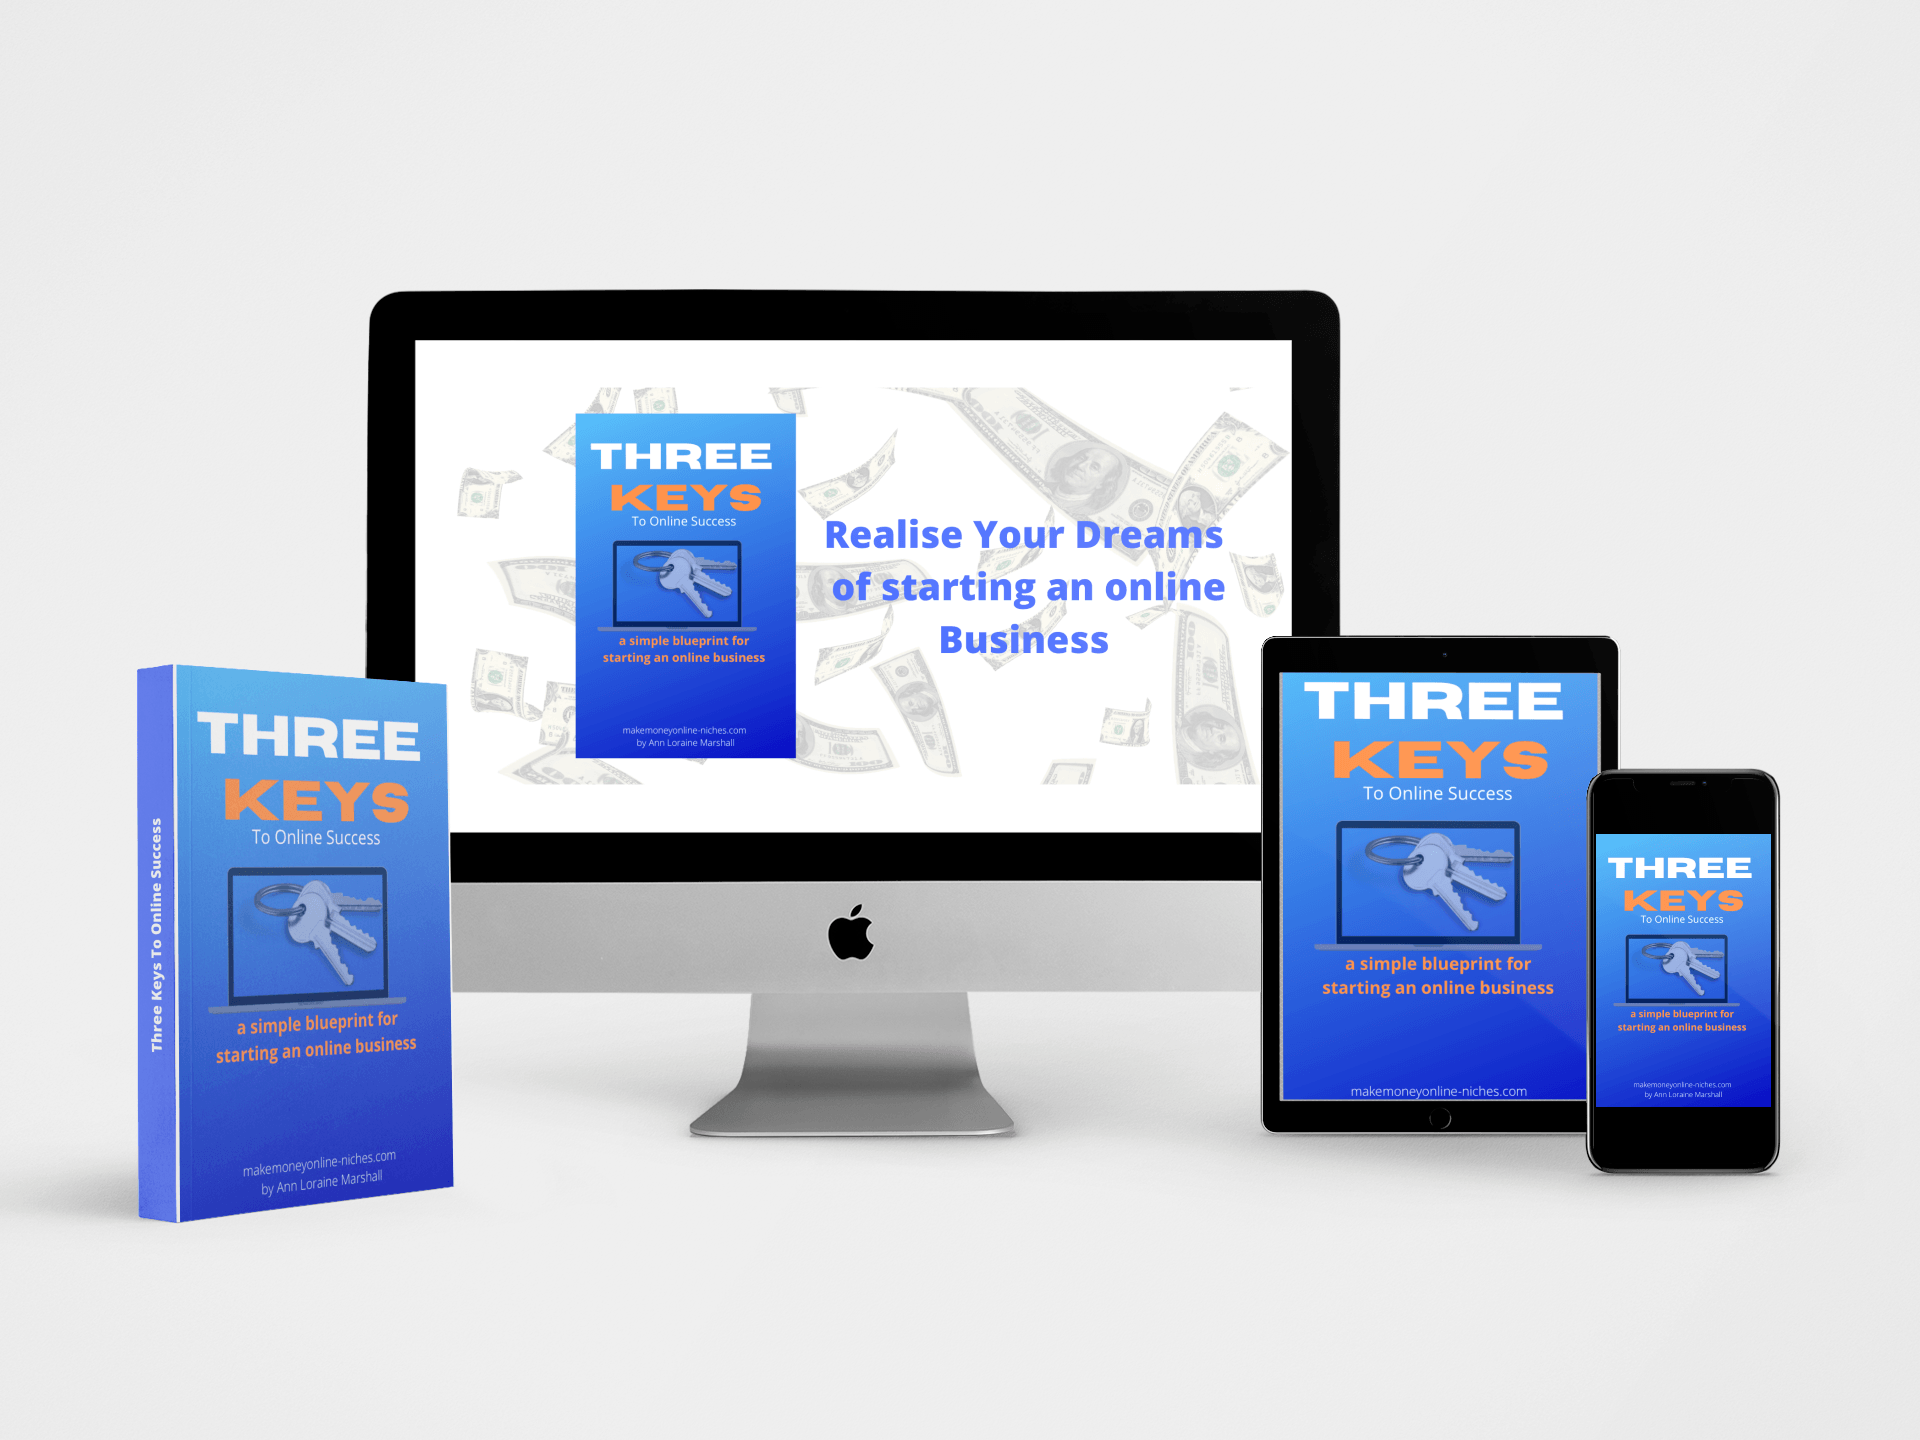 Ebook images for download of Three Keys to Online Success 2021